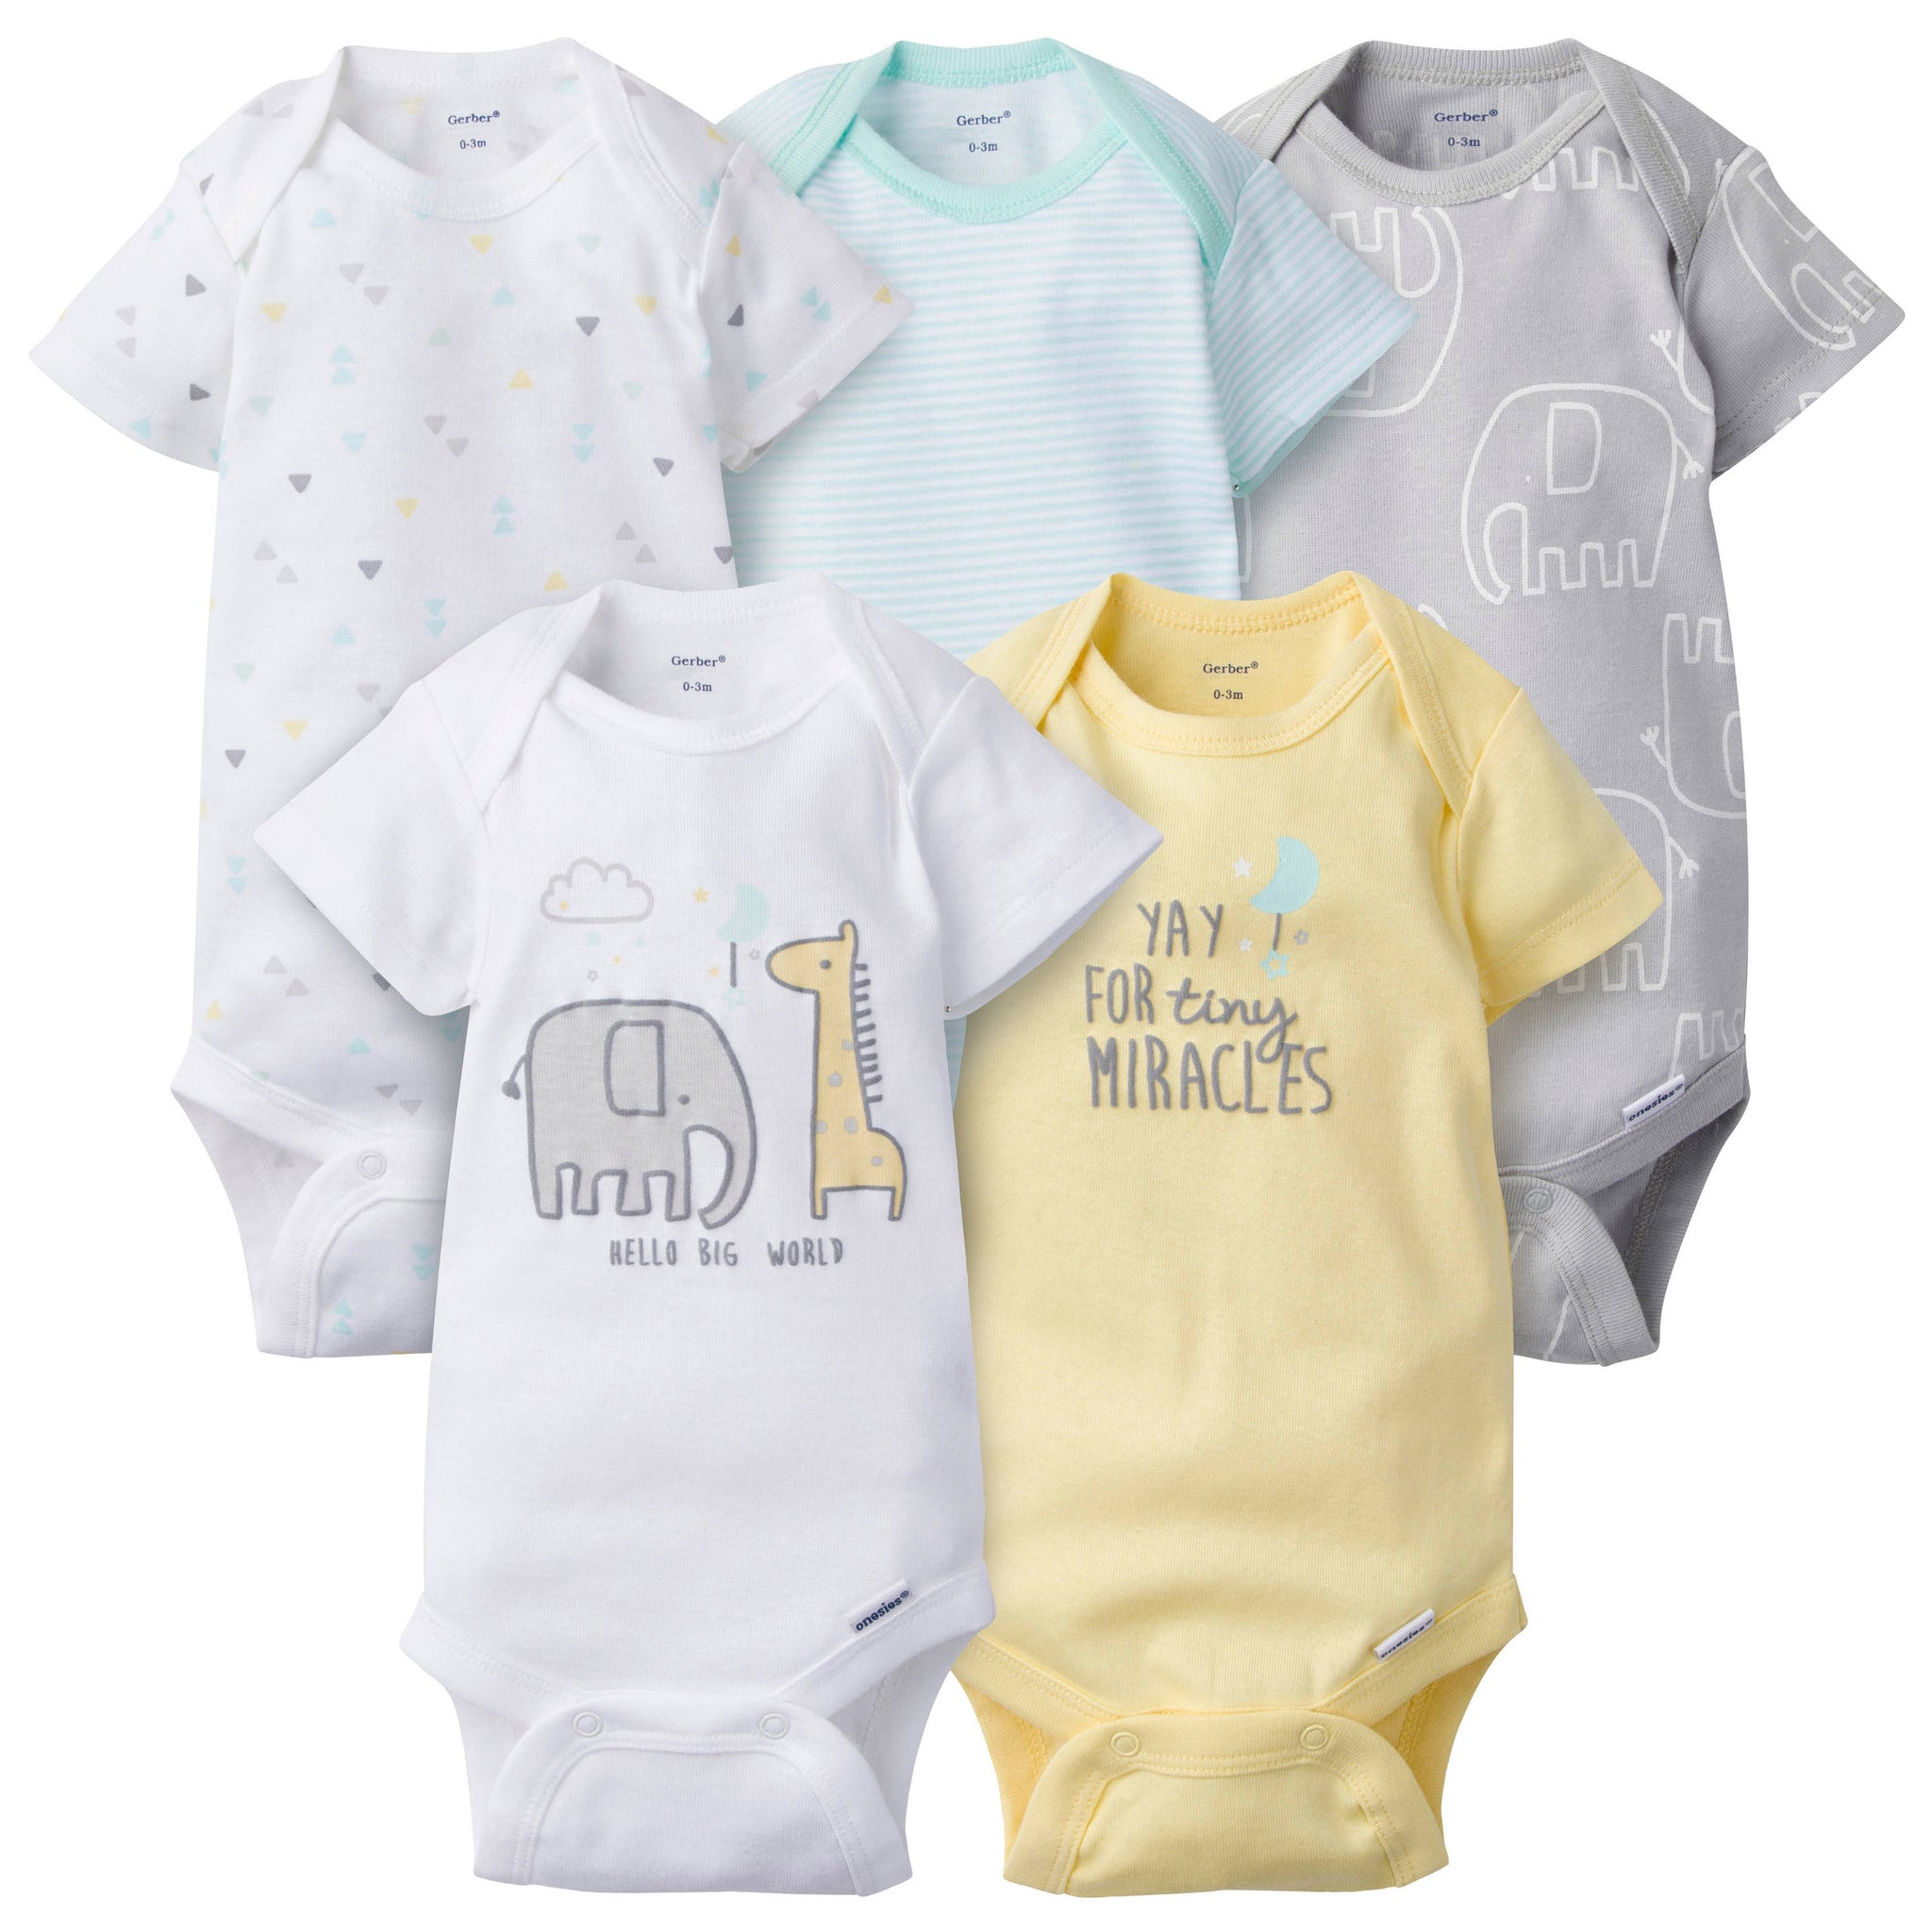 5-Pack Neutral Elephant Onesies® Brand Short Sleeve Bodysuits-Gerber Childrenswear Wholesale